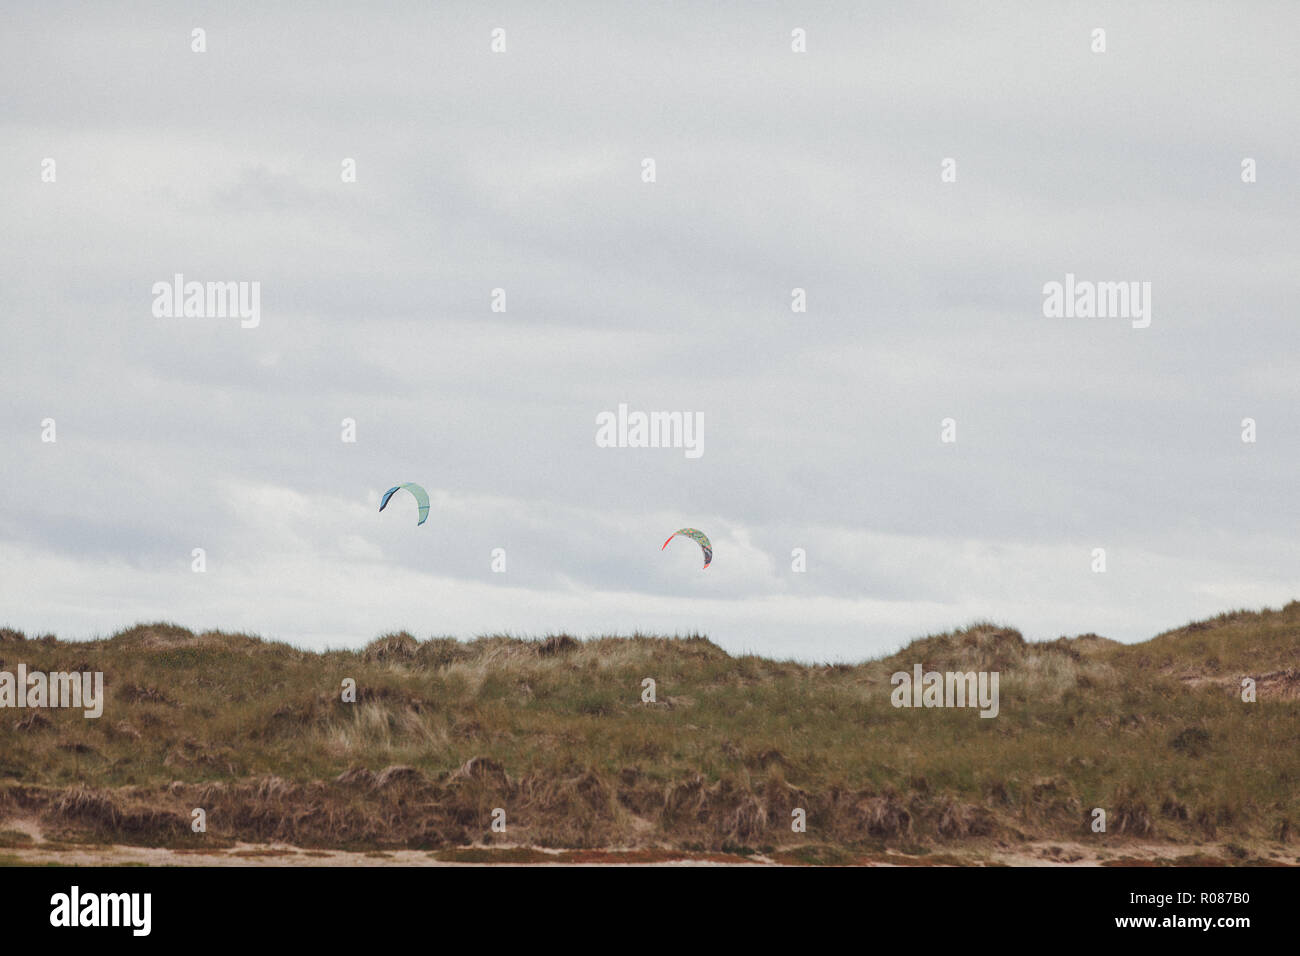 kites of kite surfers visible above the skyline of the sand dunes at Rhosneigr, Anglesey, North Wales, UK - Stock Image